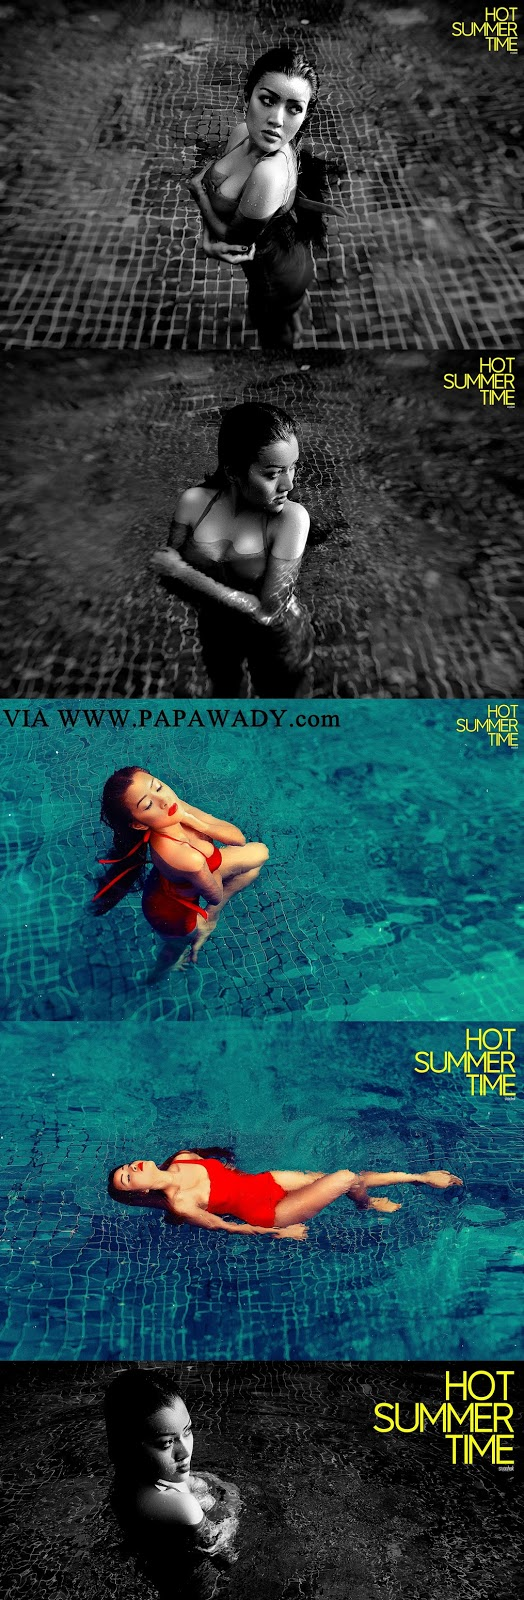 Poe Ei Phyu Zin - Summer Time Photoshoot By HAK